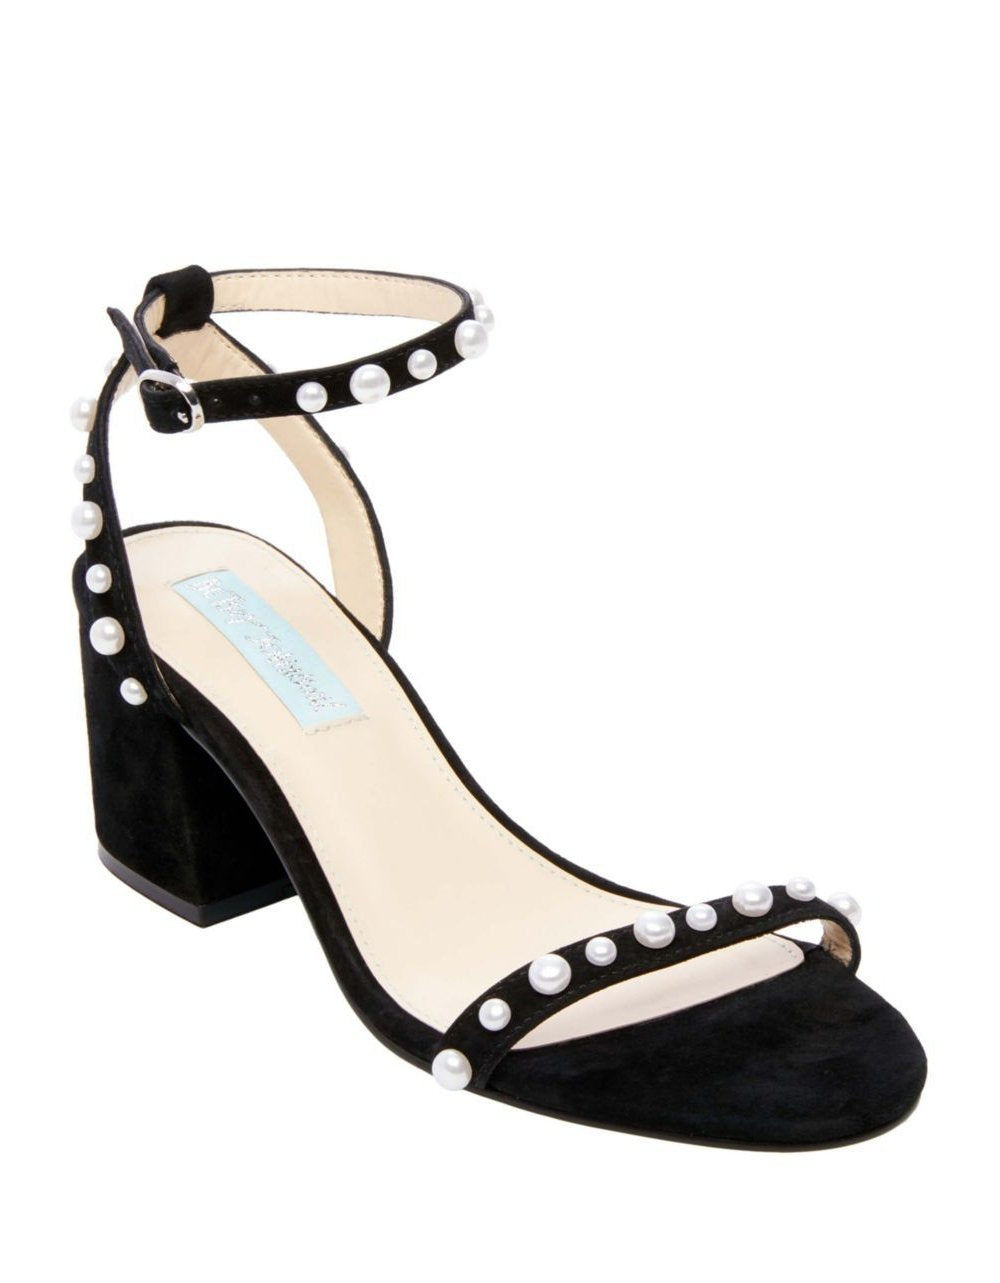 SB-MILLI BLACK - SHOES - Betsey Johnson